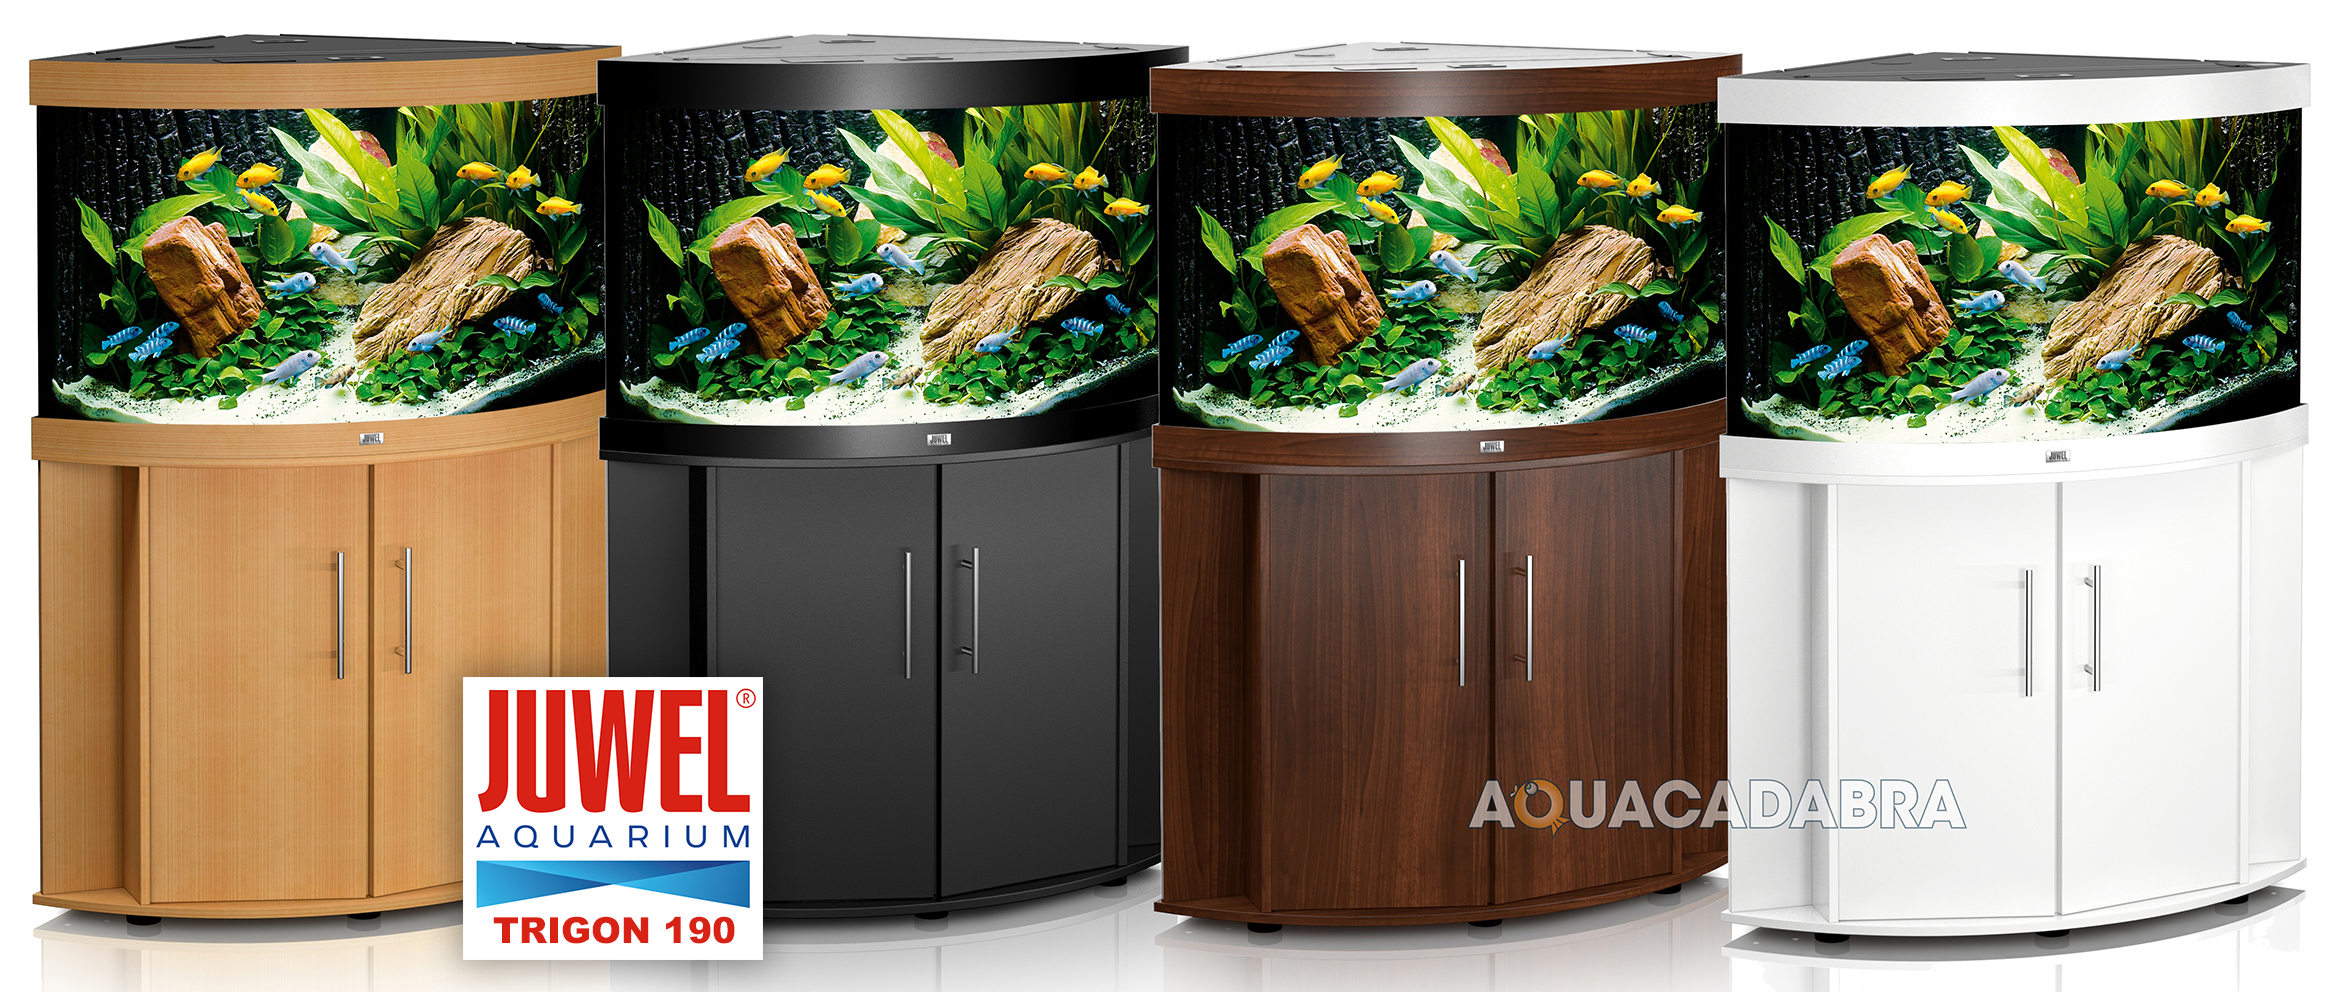 juwel aquarium fish tank cabinet rio trigon vision vio lido light pump filter ebay. Black Bedroom Furniture Sets. Home Design Ideas